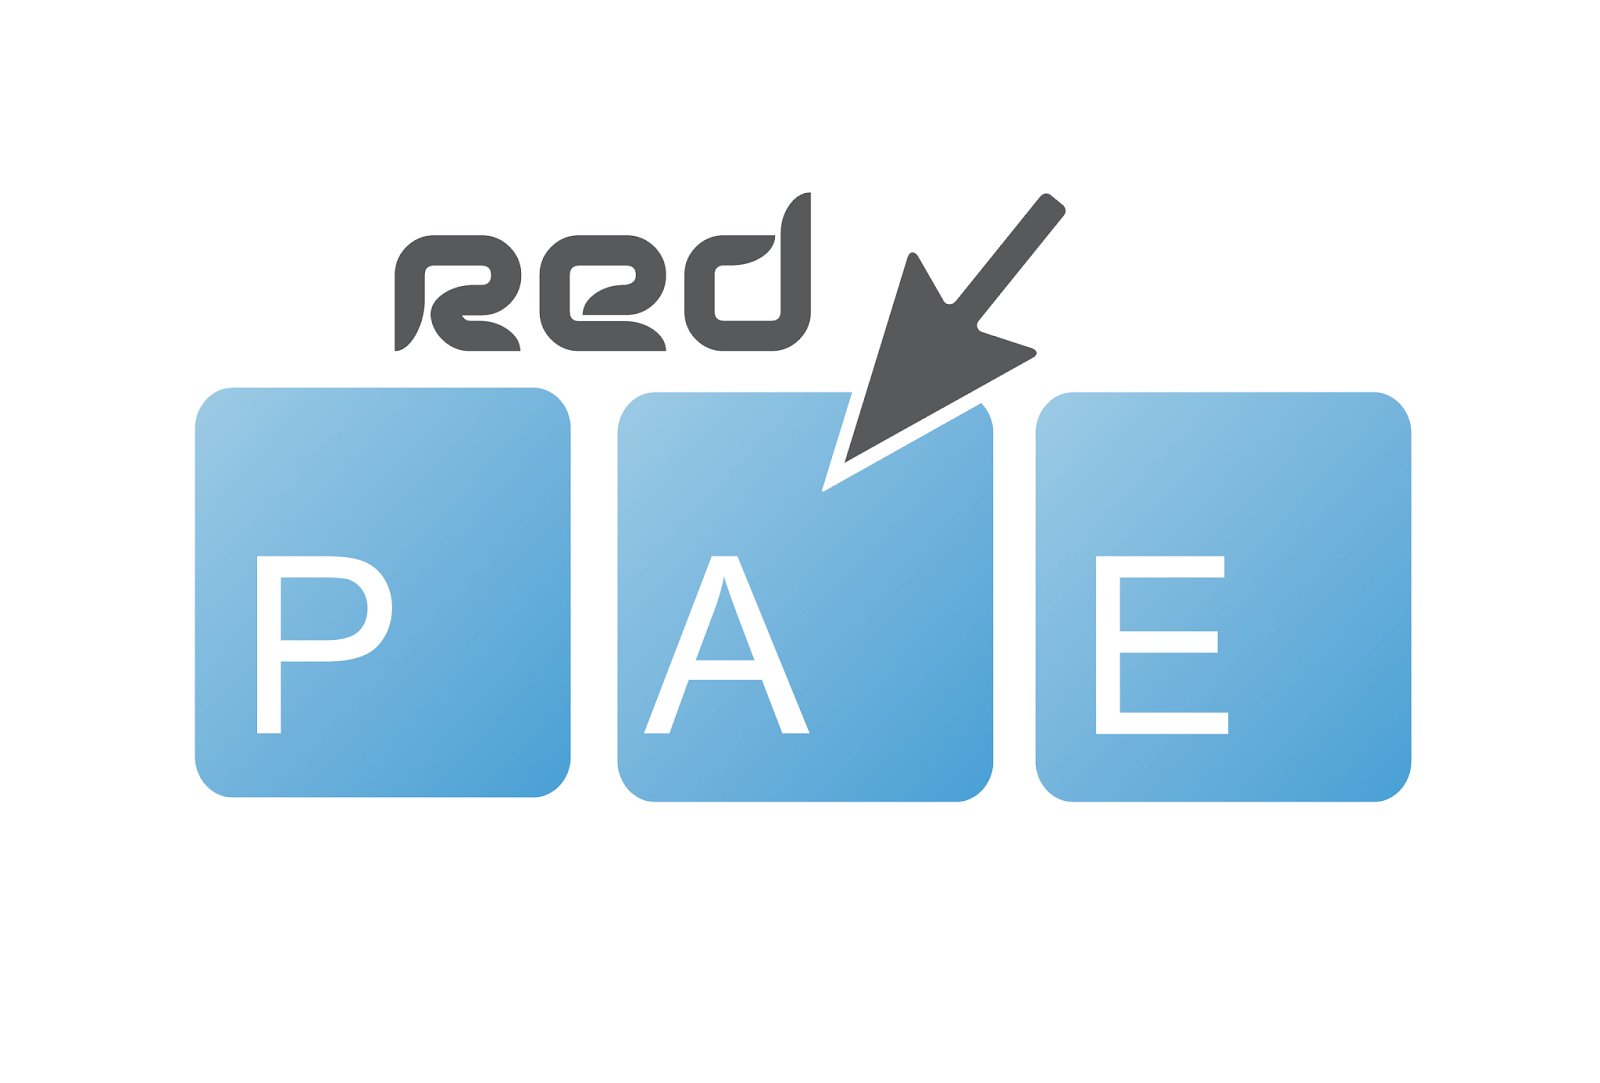 logotipo red PAE